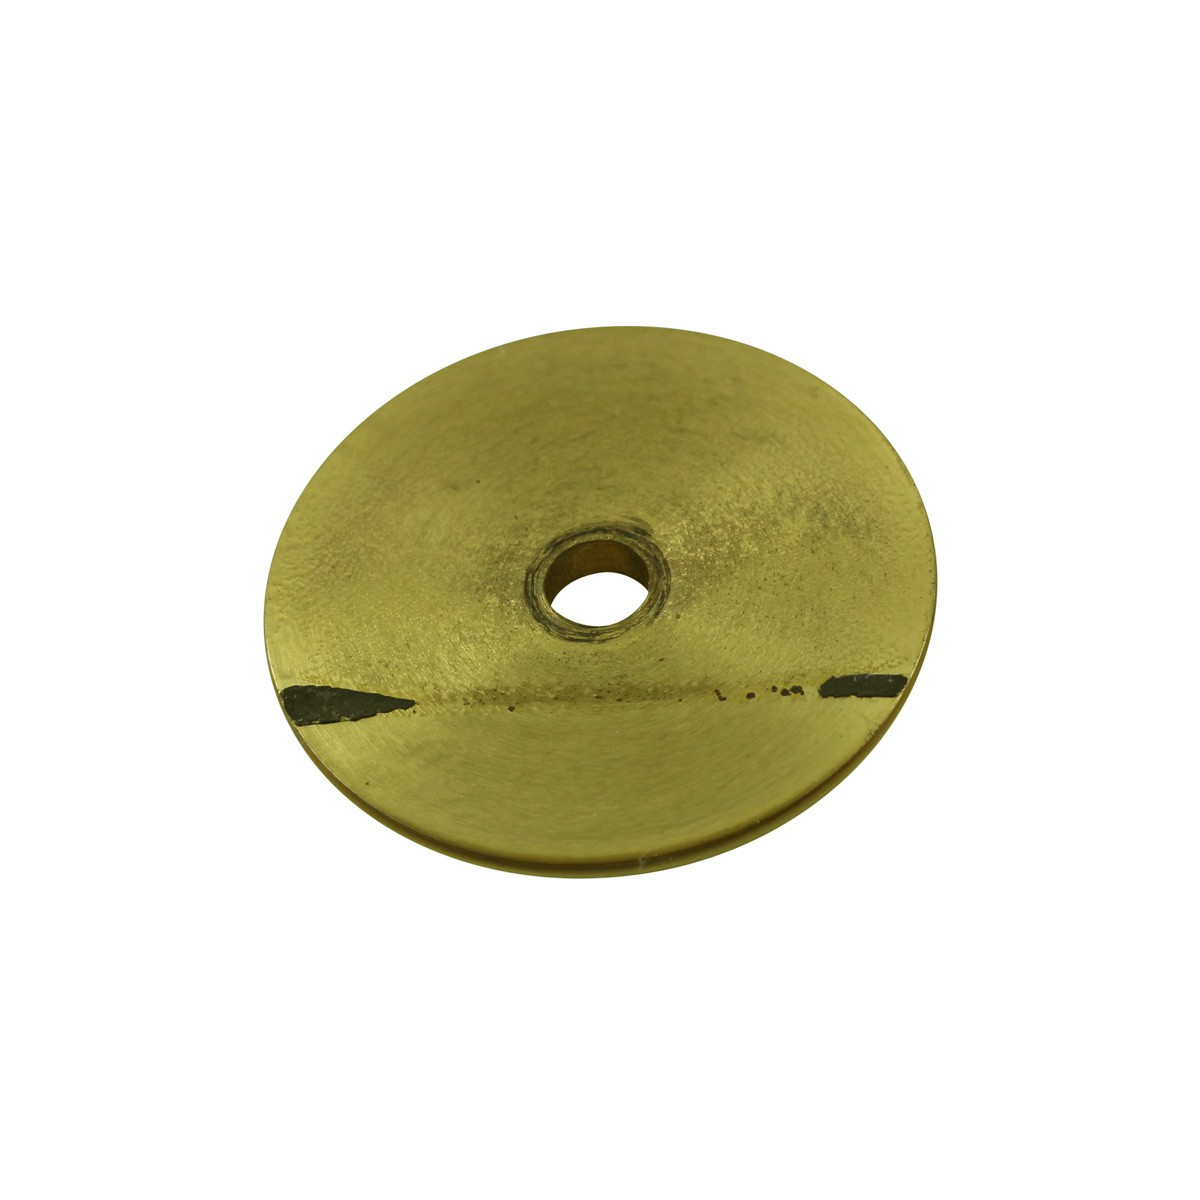 6 Cabinet Knob Rosettes Bright Solid Brass 1 14 Cabinet Knob Roses Cabinet Knob Back Plate Cabinet Knob Backplate